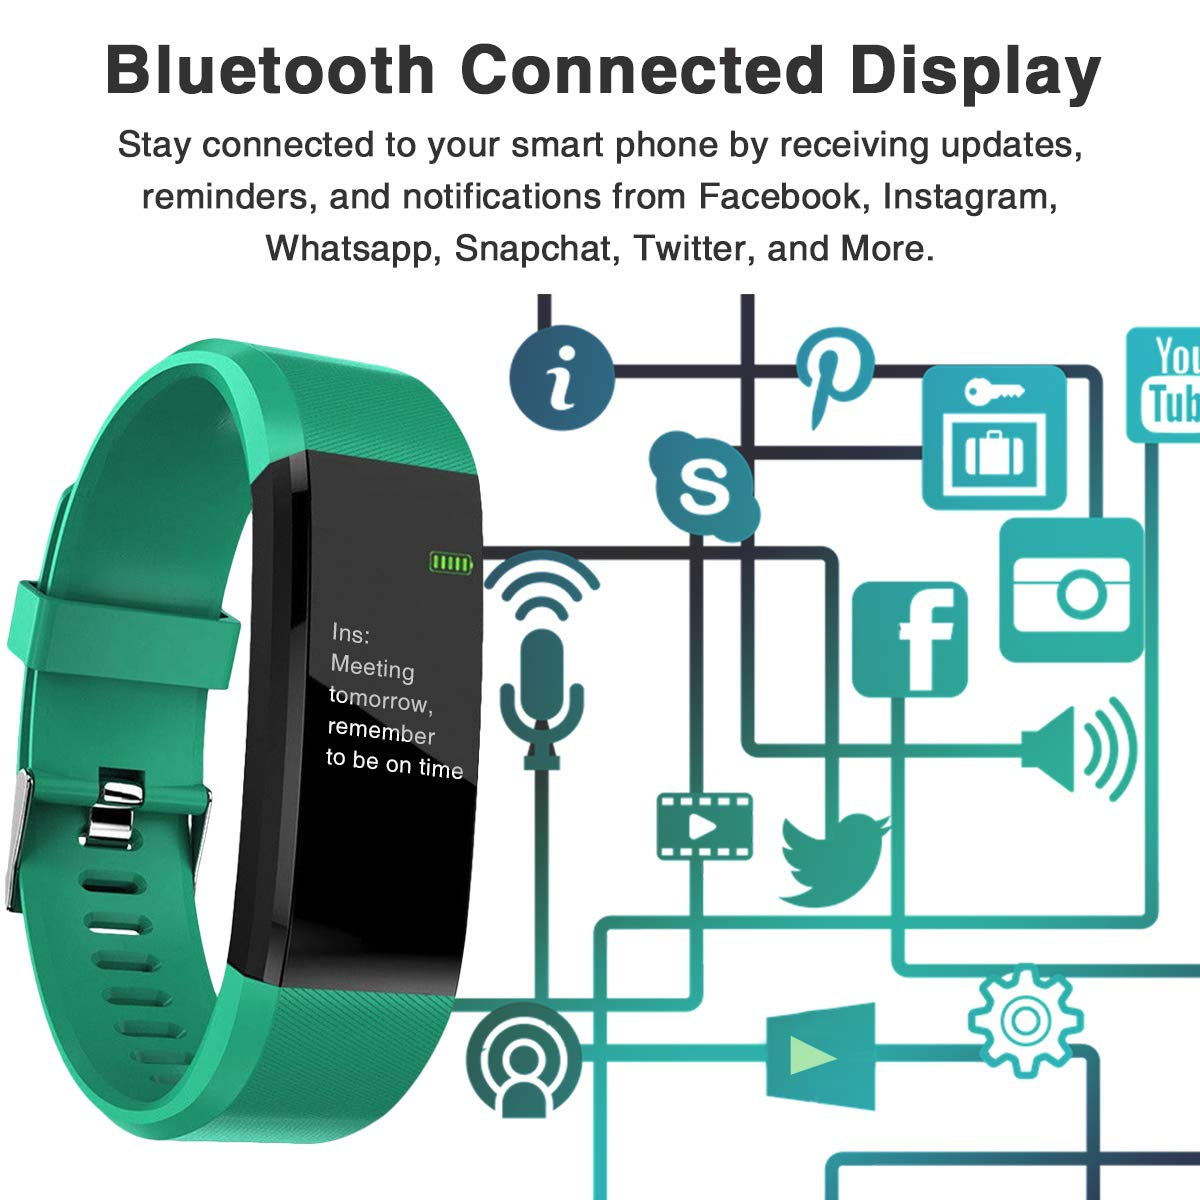 Burn-Rate Fitness Tracker Heart Rate Monitor - Smart Watches for Women & Men, Kids Color Smart Watch Fit Bracelet. Reloj Inteligente band Pedometer, Waterproof, Distance Activity bit for Android & iOS by Burn-Rate Fitness 115plus (Image #6)